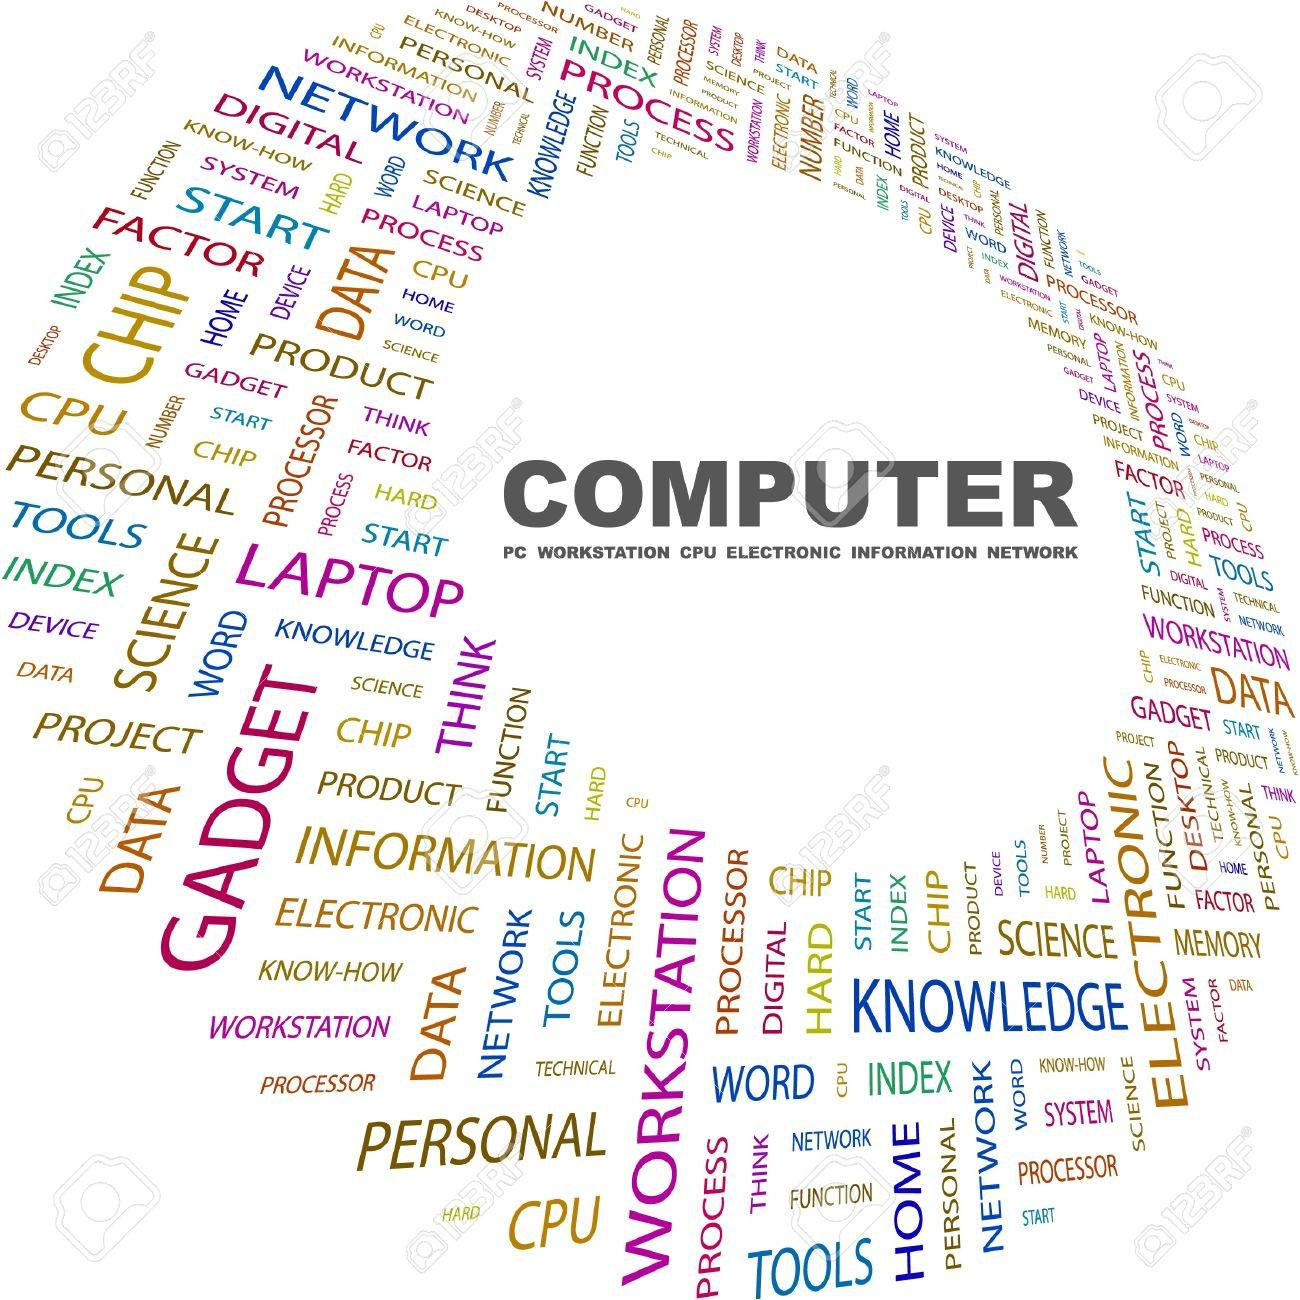 COMPUTER Word Collage On White Background Vector Illustration With Different Association Terms